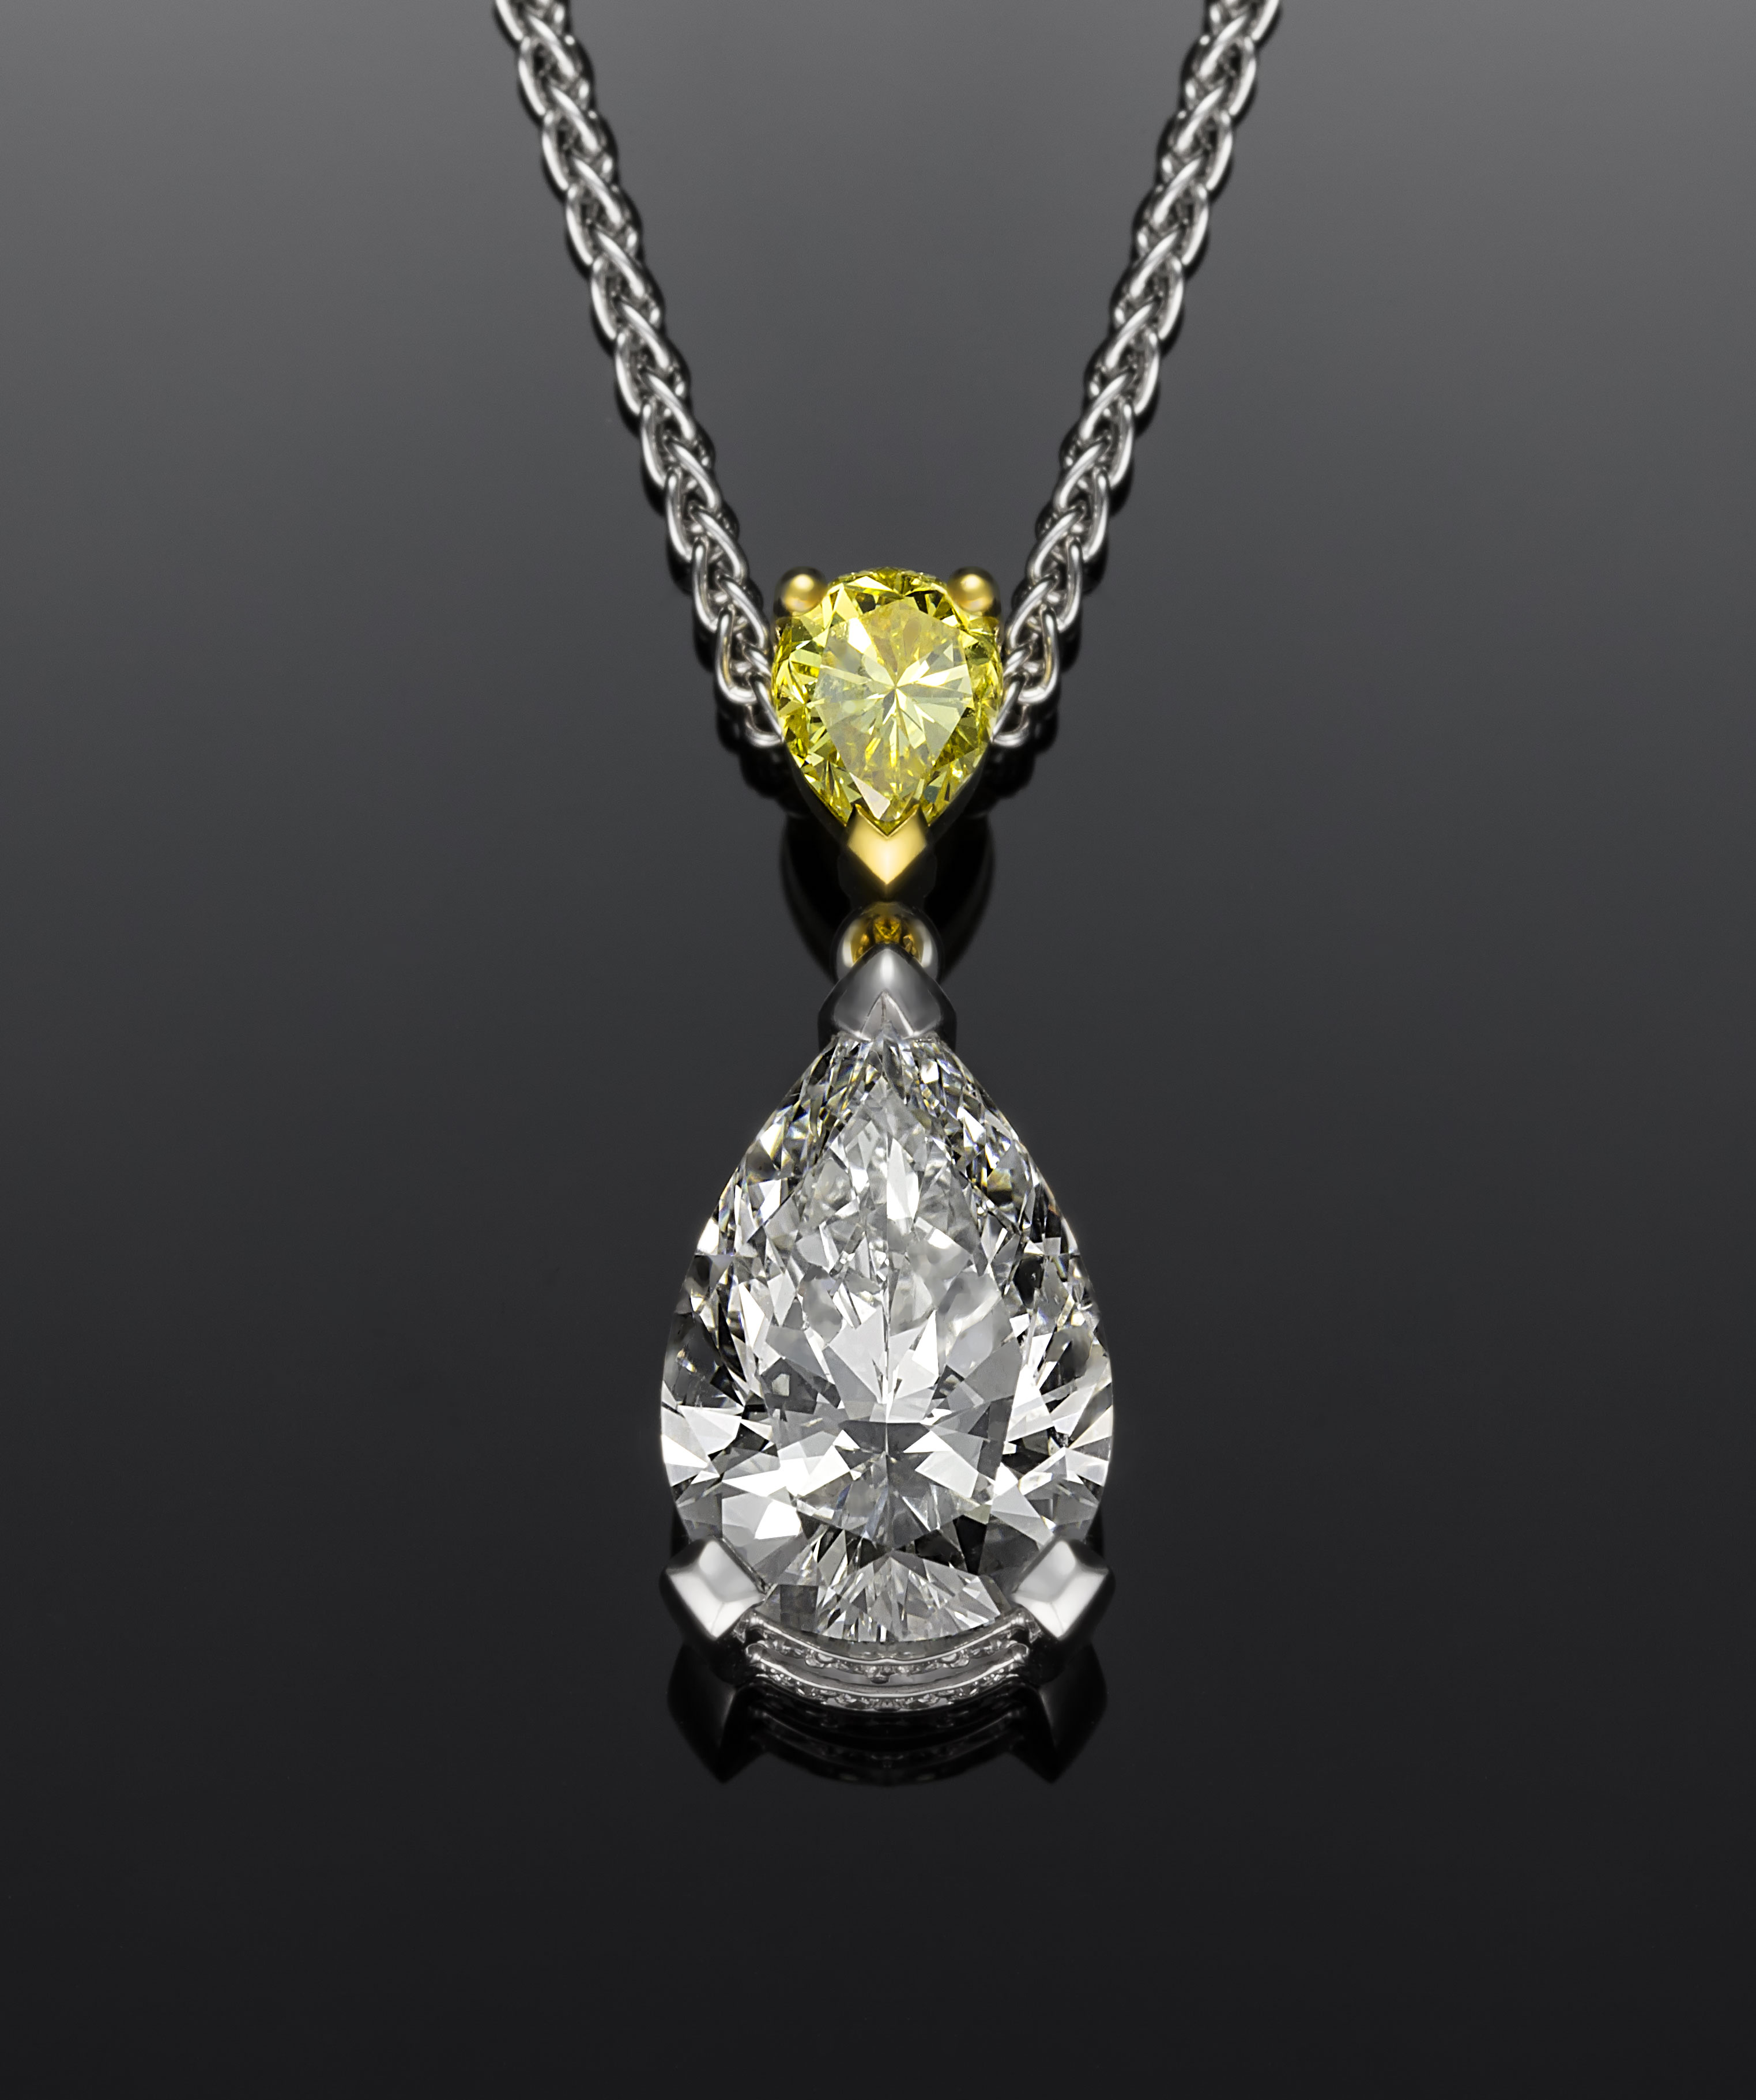 Pear Yellow White Pendant